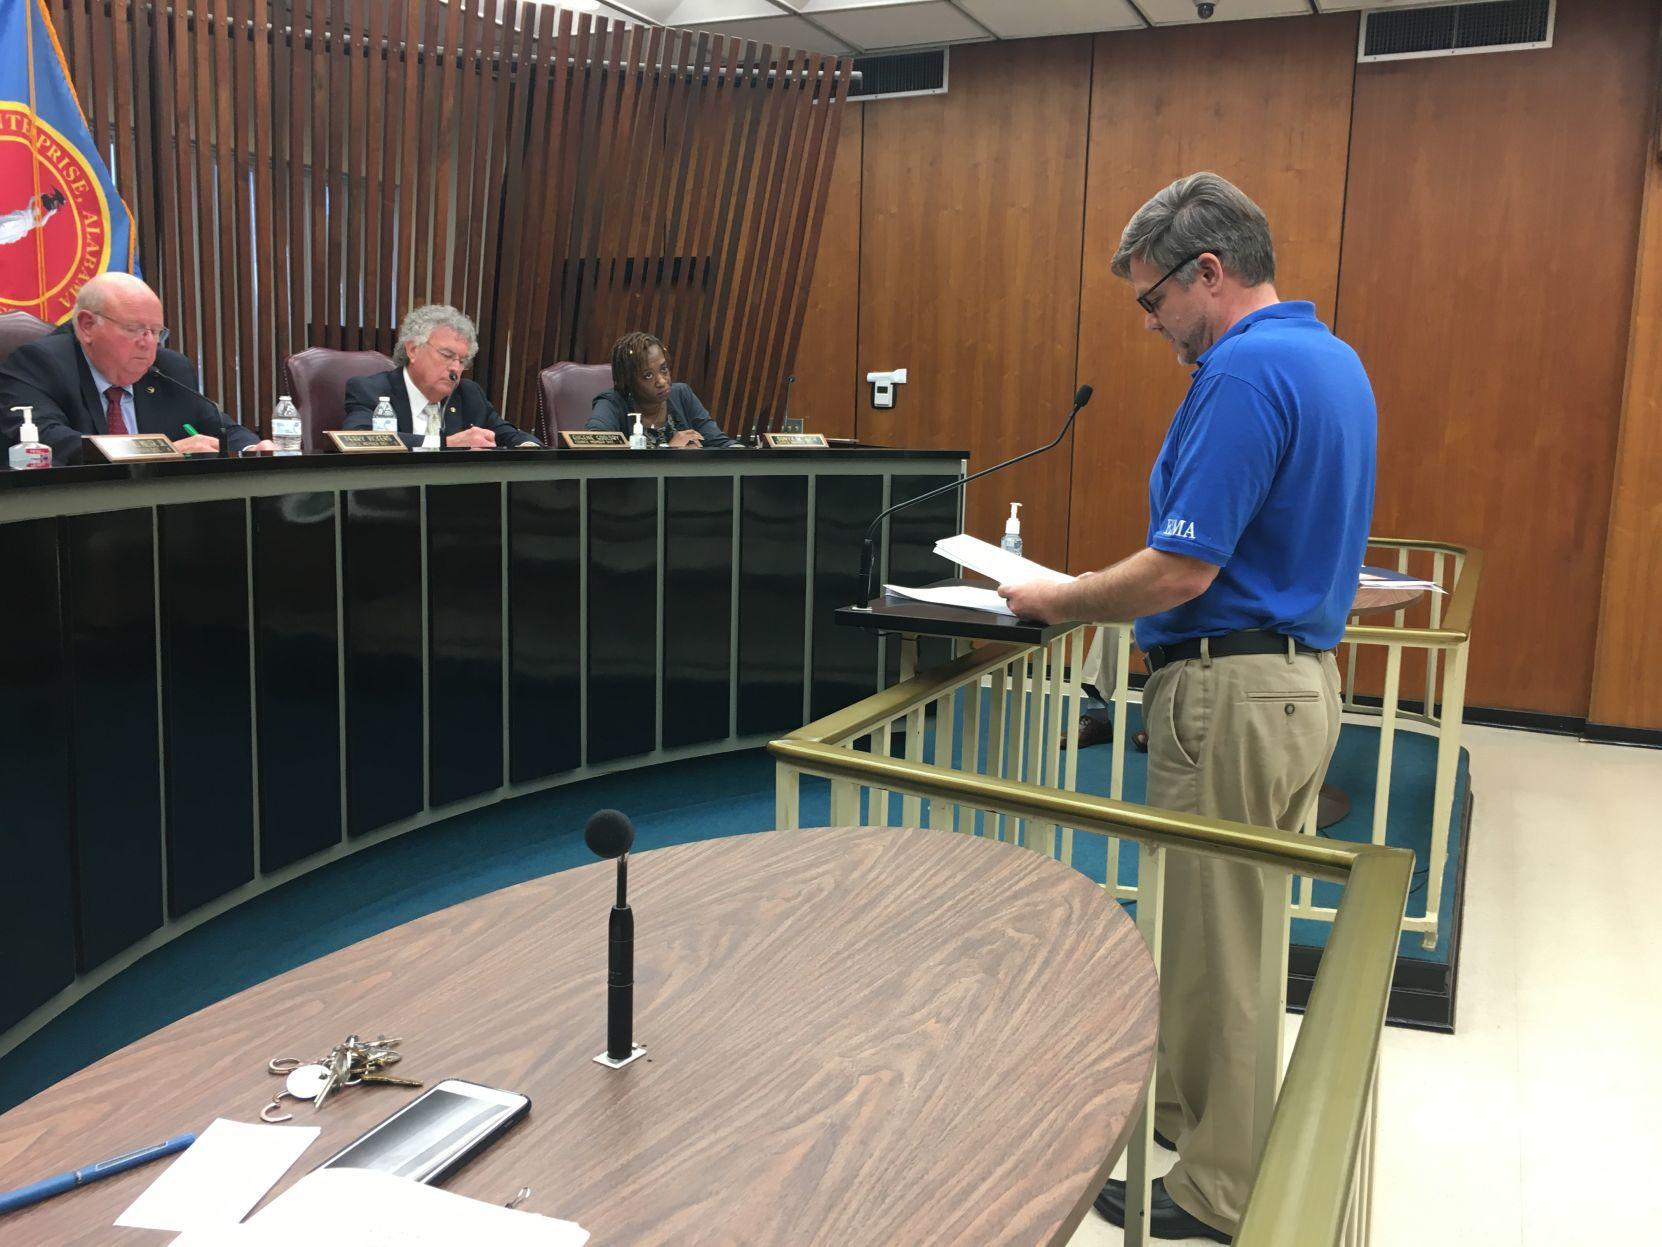 EMA Director Brown provides COVID-19 update to Enterprise City Council - News - dothaneagle.com